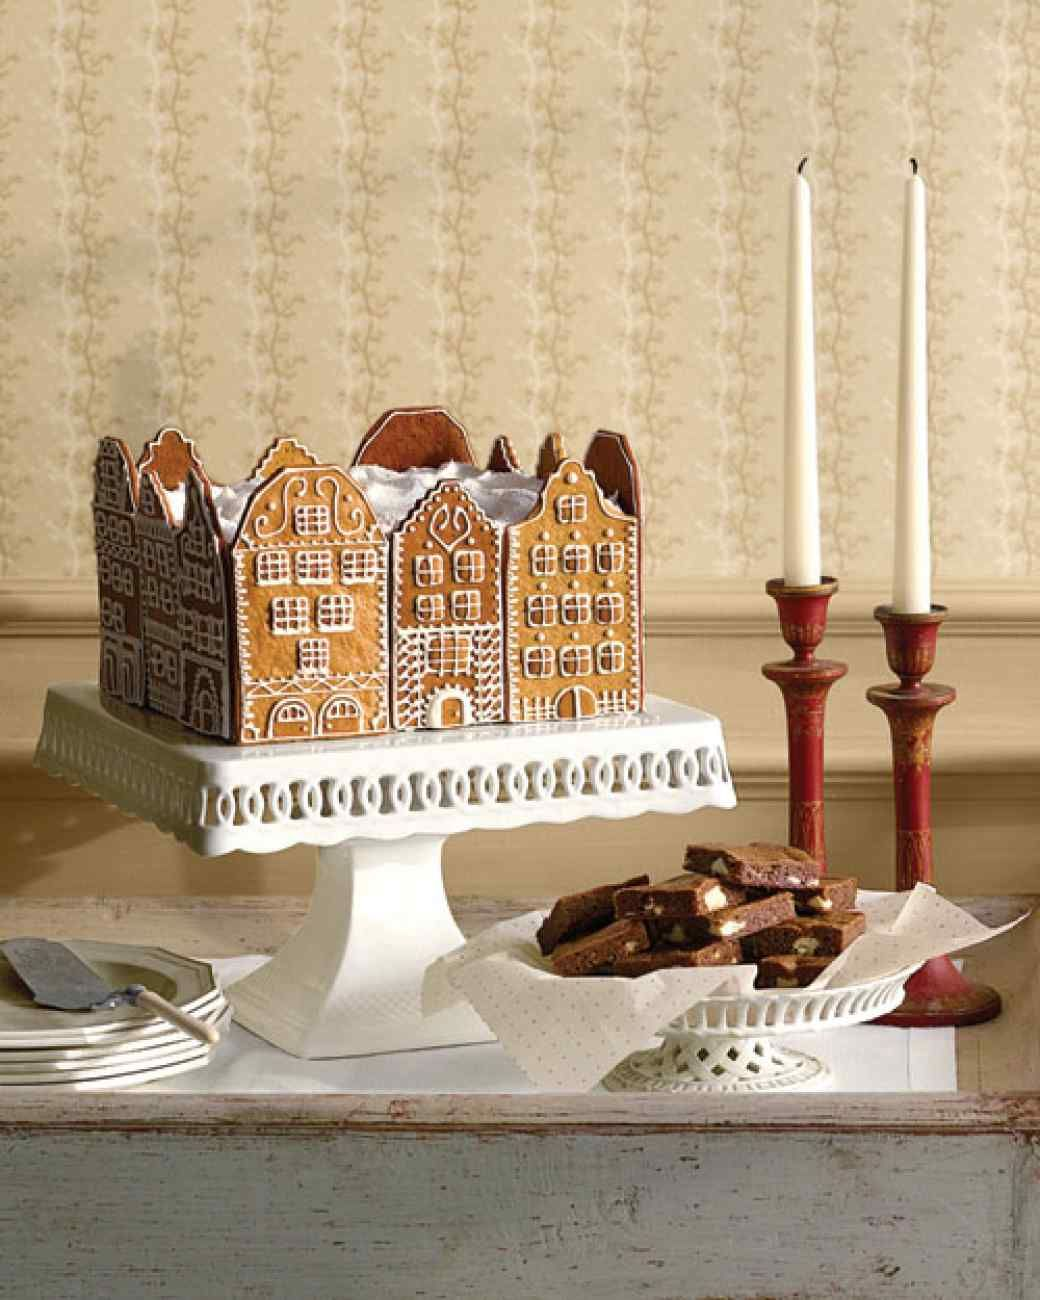 Christmas Cake Decorations That Will Dazzle And Delight